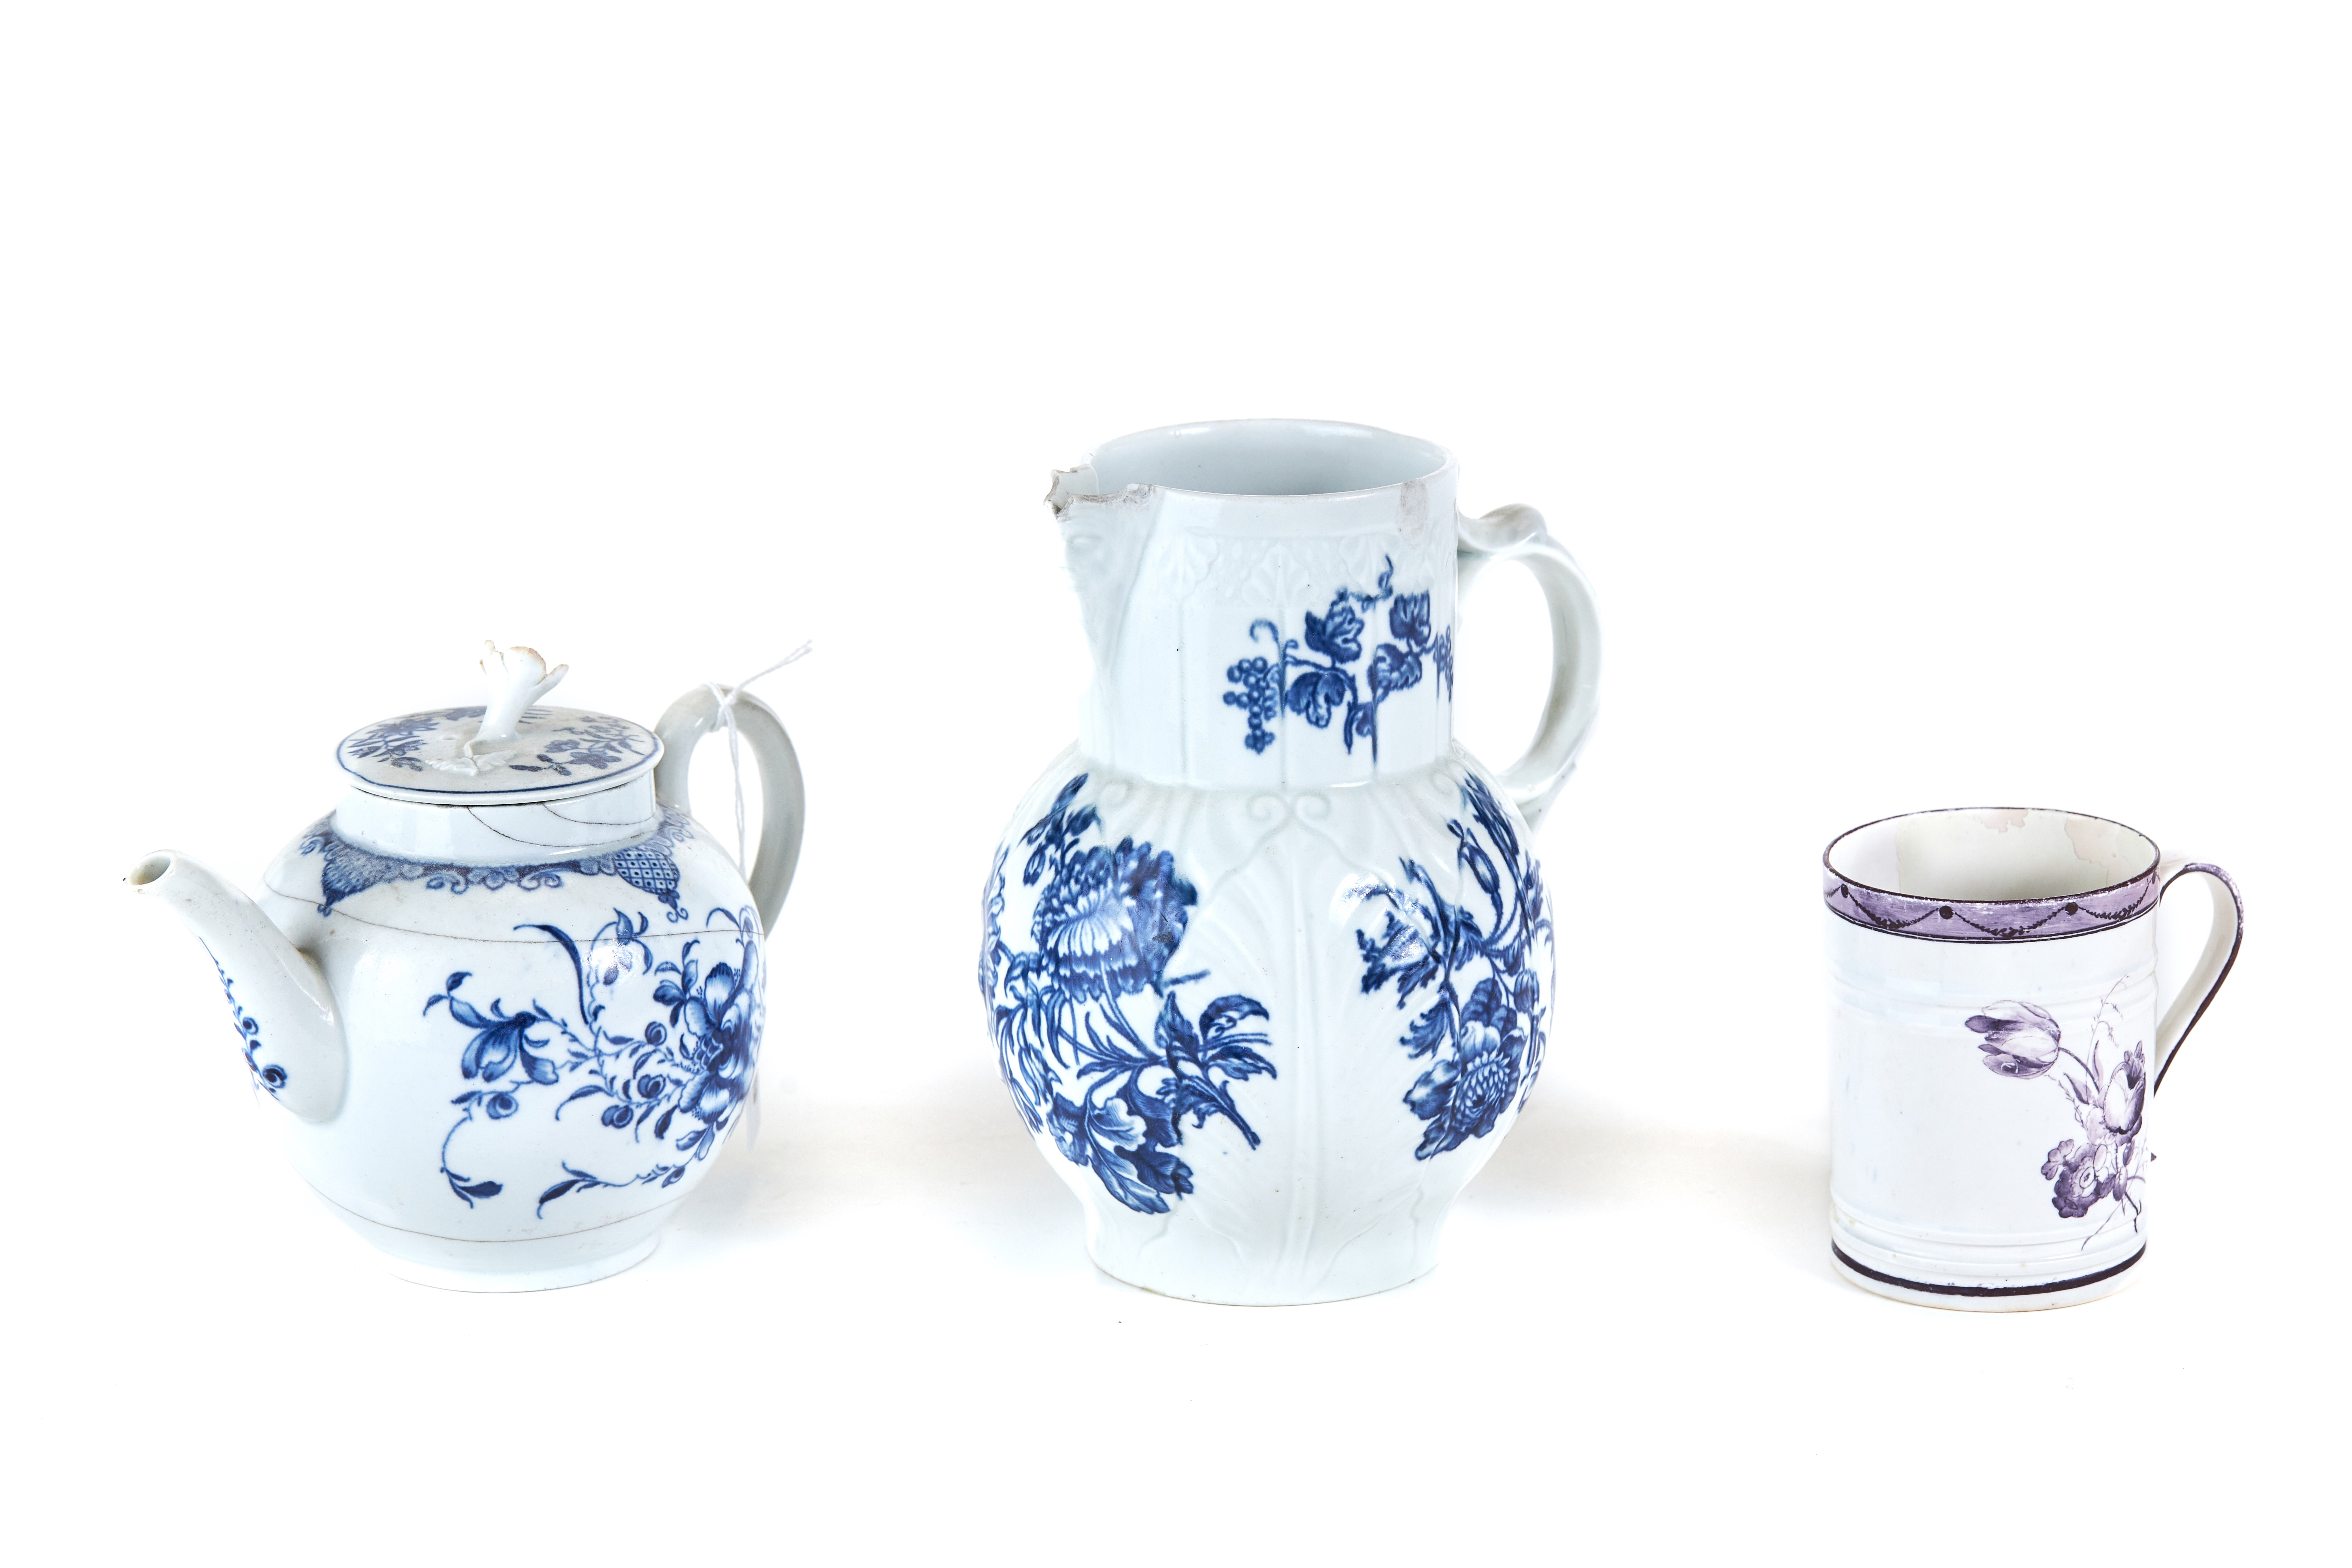 Lot 19 - AN 18TH CENTURY WORCESTER PORCELAIN TEAPOT AND COVER decorated in underglaze blue with flowers and